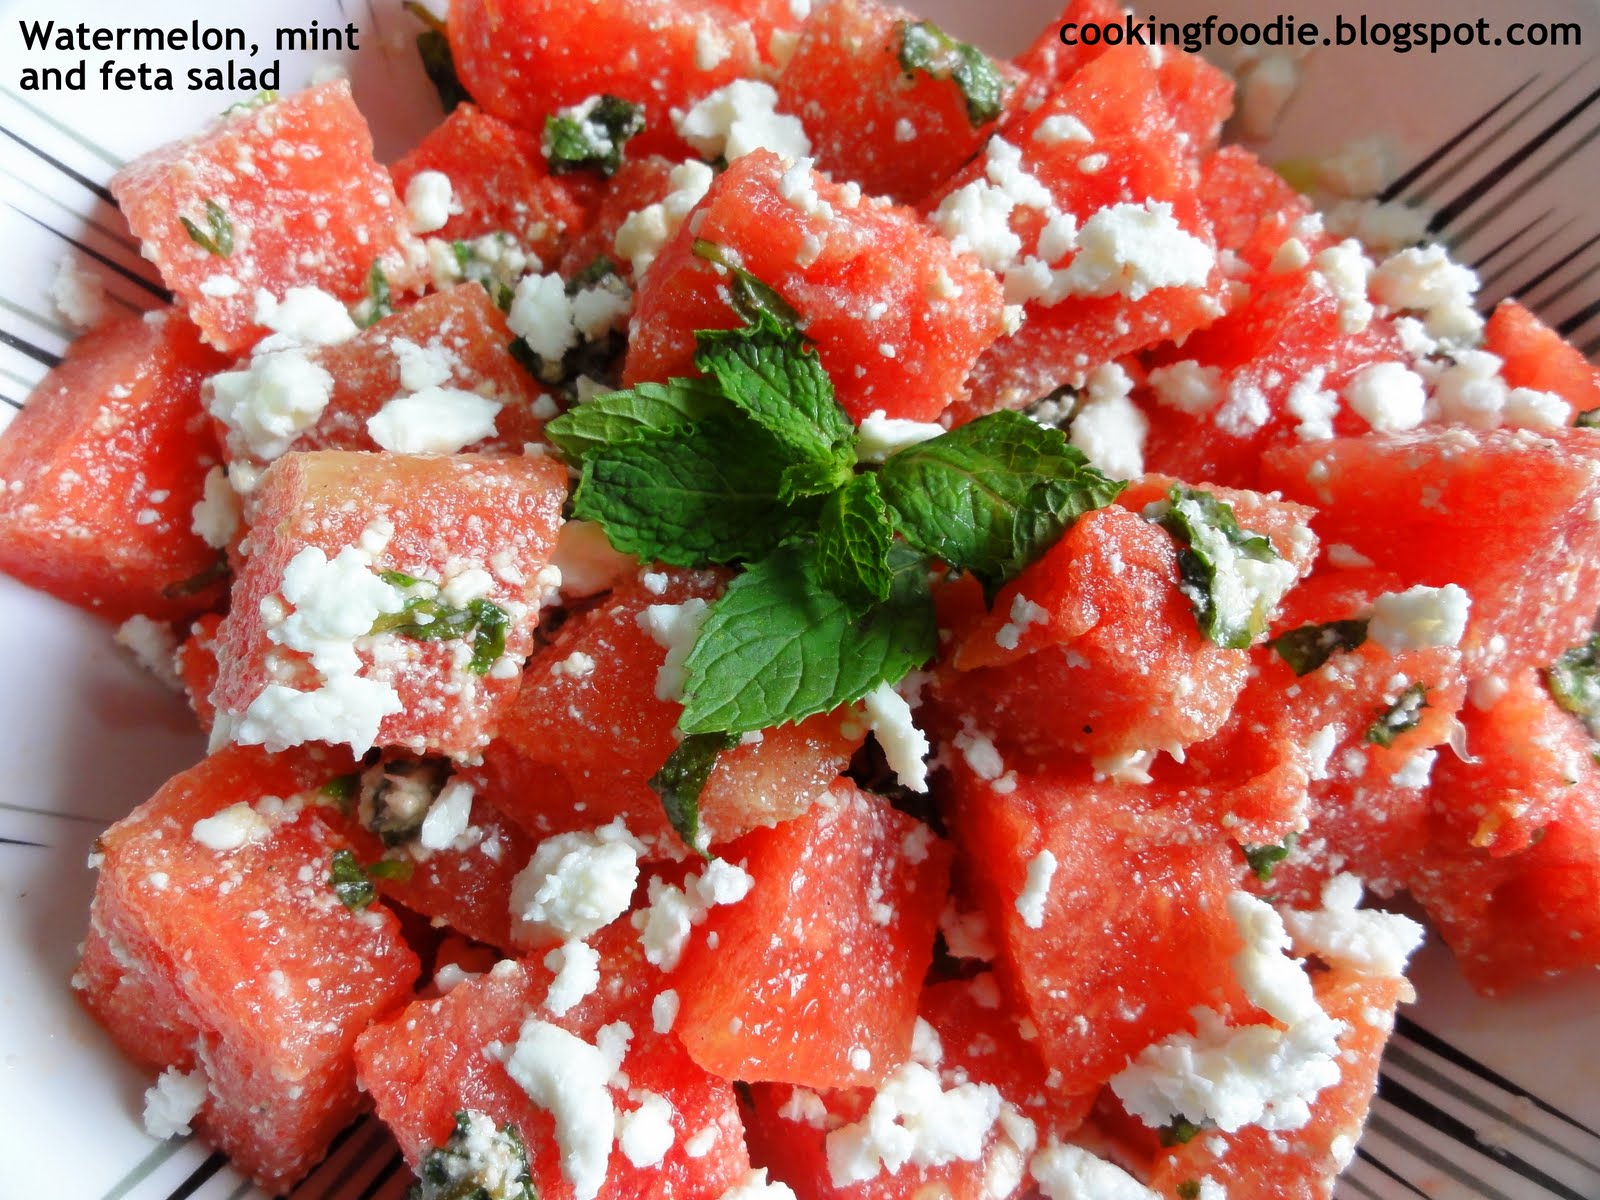 365 days of Eating: Watermelon, Mint and Feta Salad